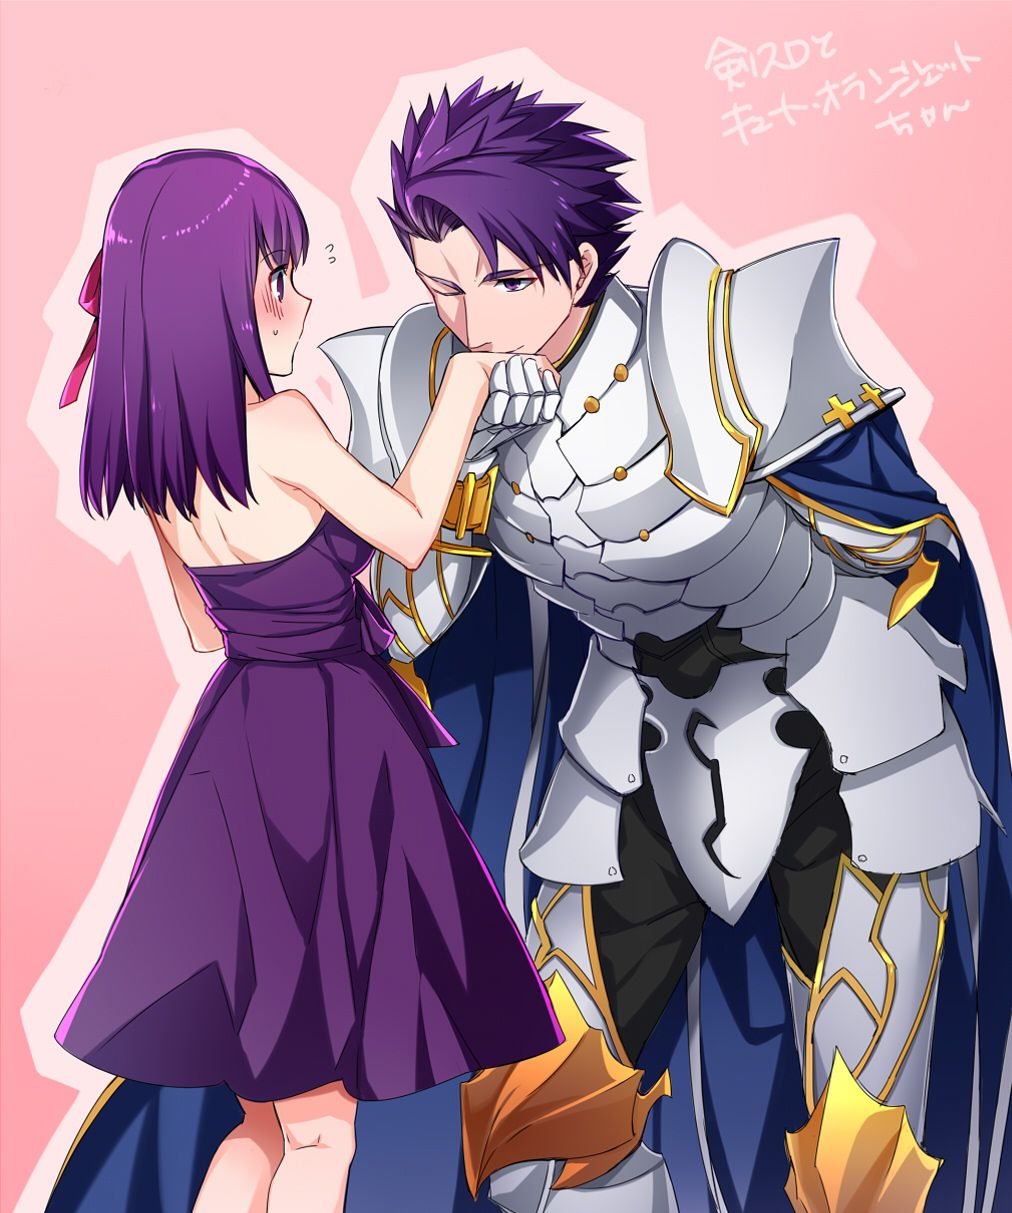 Sakura Matou Lancelot Fate Grand Order Fate Stay Night Anime Fate Anime Series Fate Stay Night